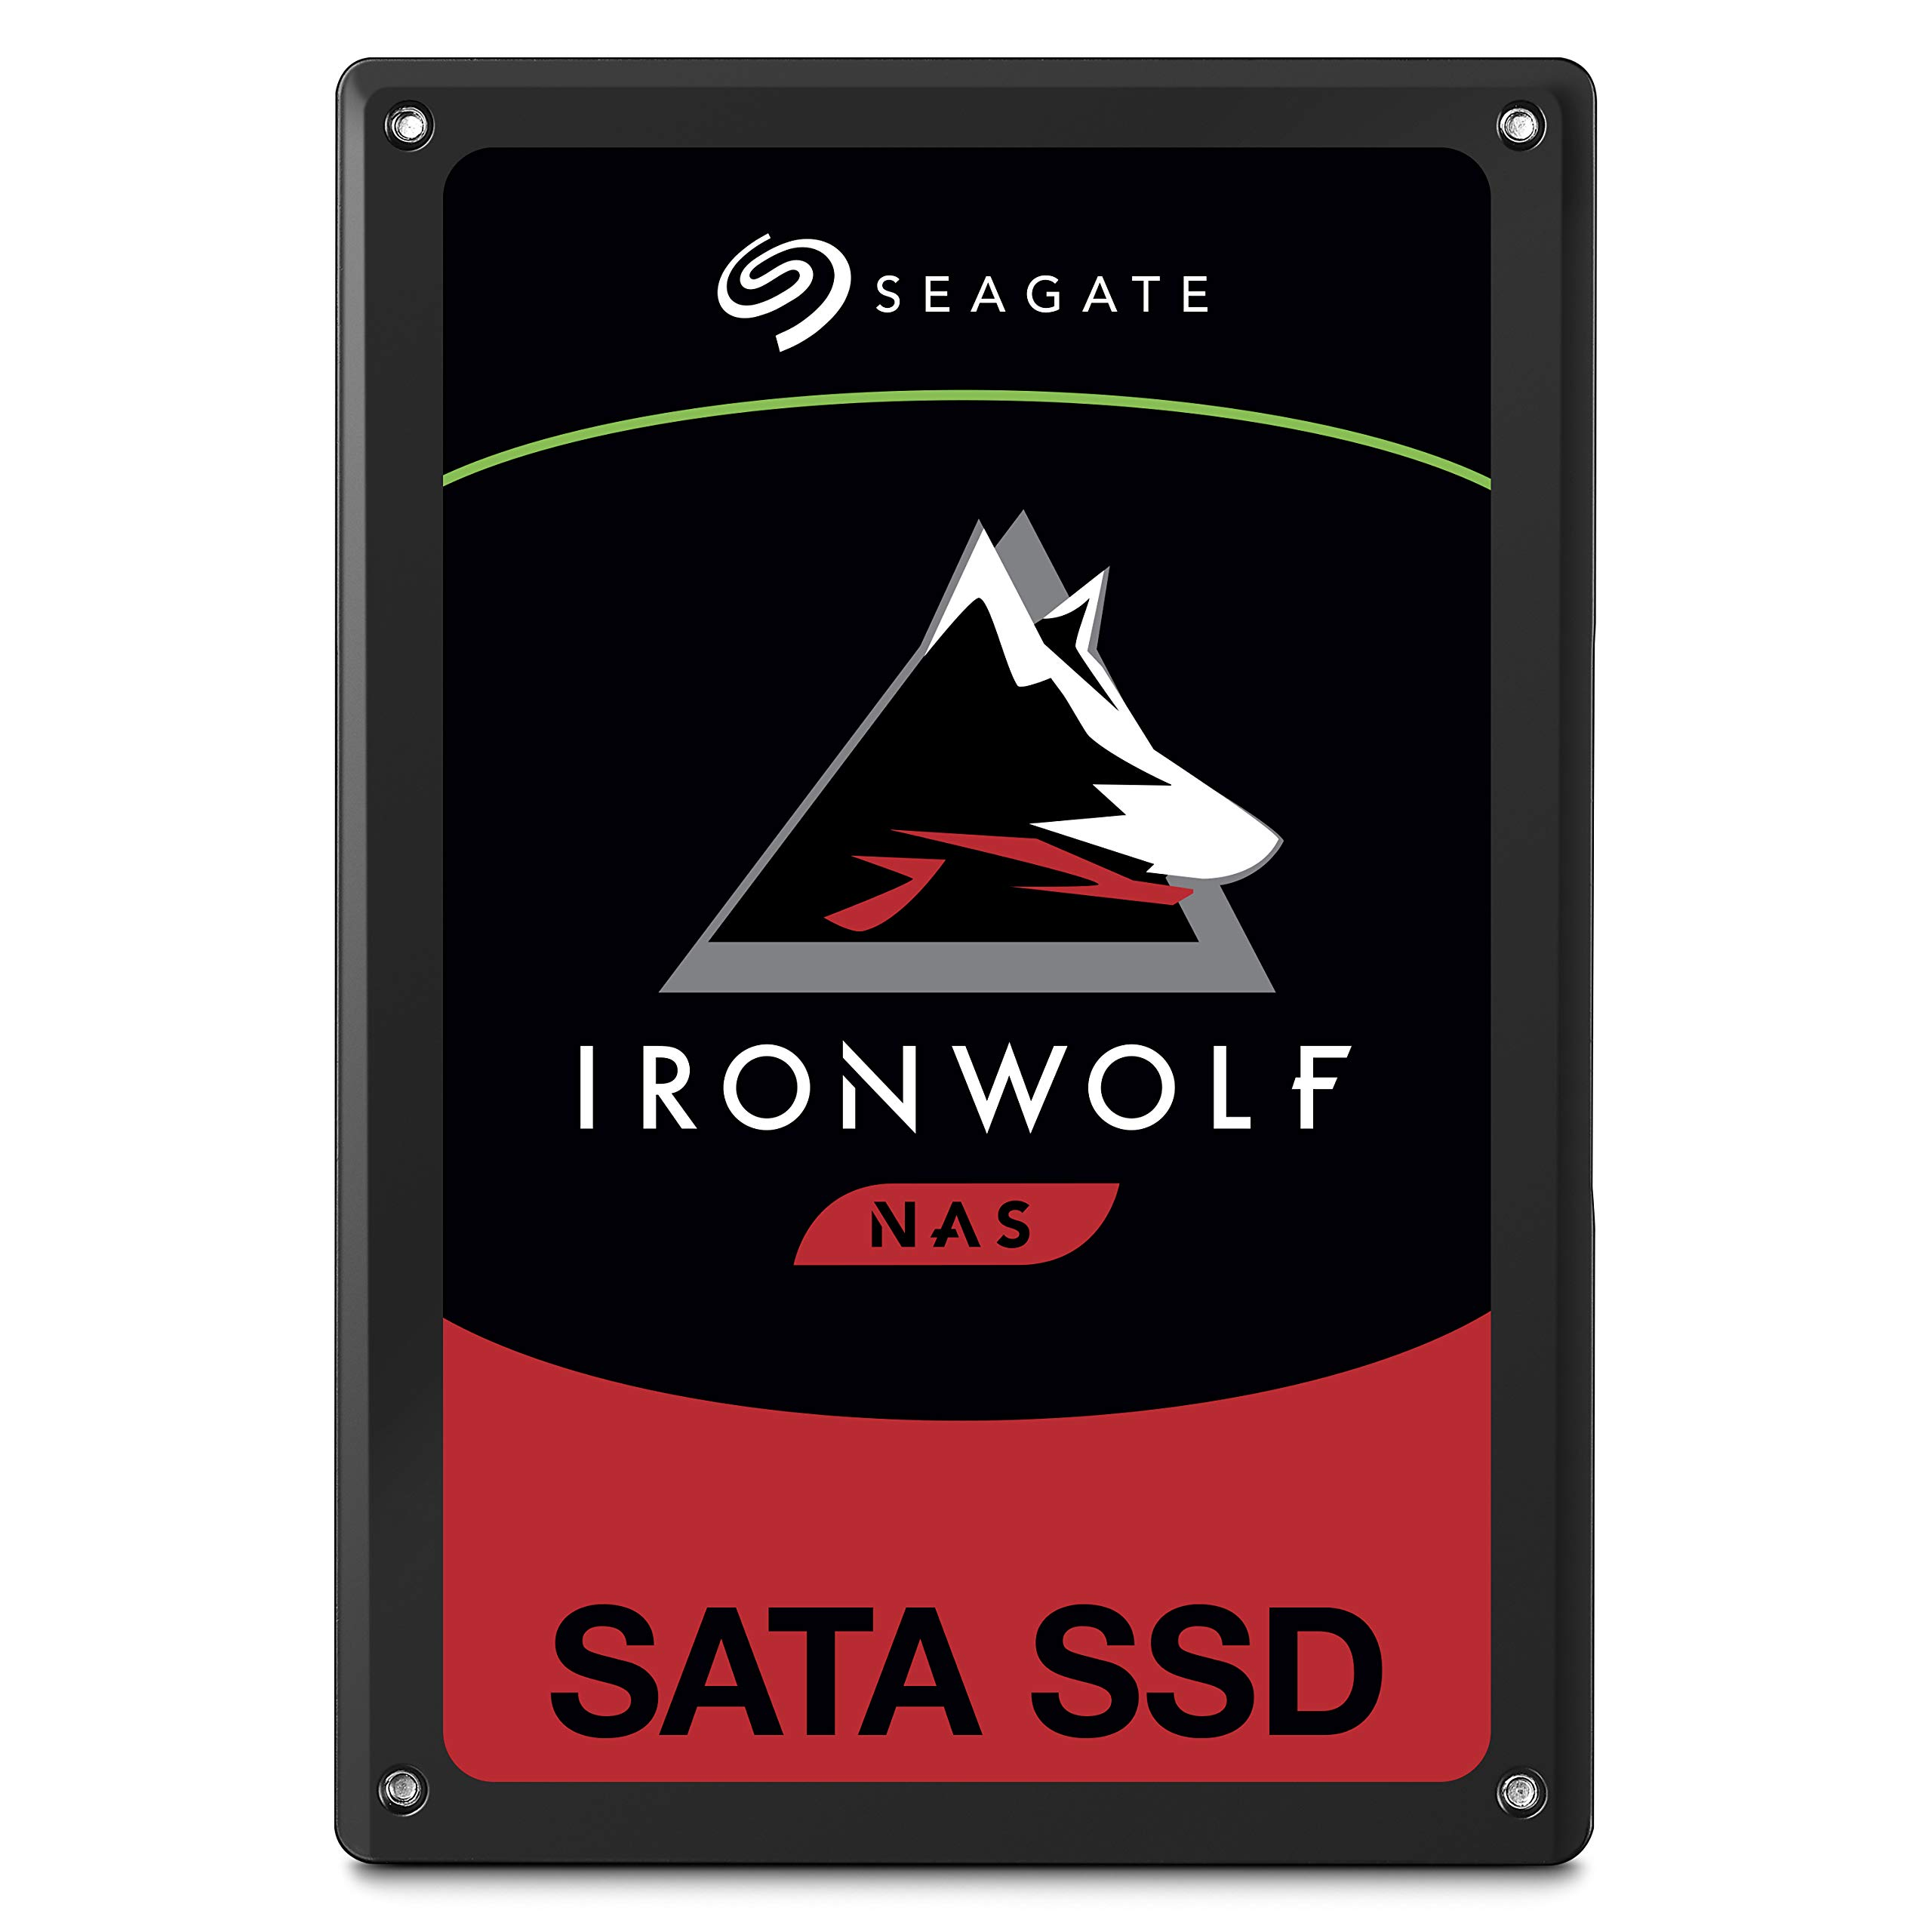 Seagate IronWolf 110 240GB NAS SSD Internal Solid State Drive - 2.5 inch SATA Multibay RAID System Network Attached Storage, 2 Year Data Recovery (ZA240NM10001) by Seagate